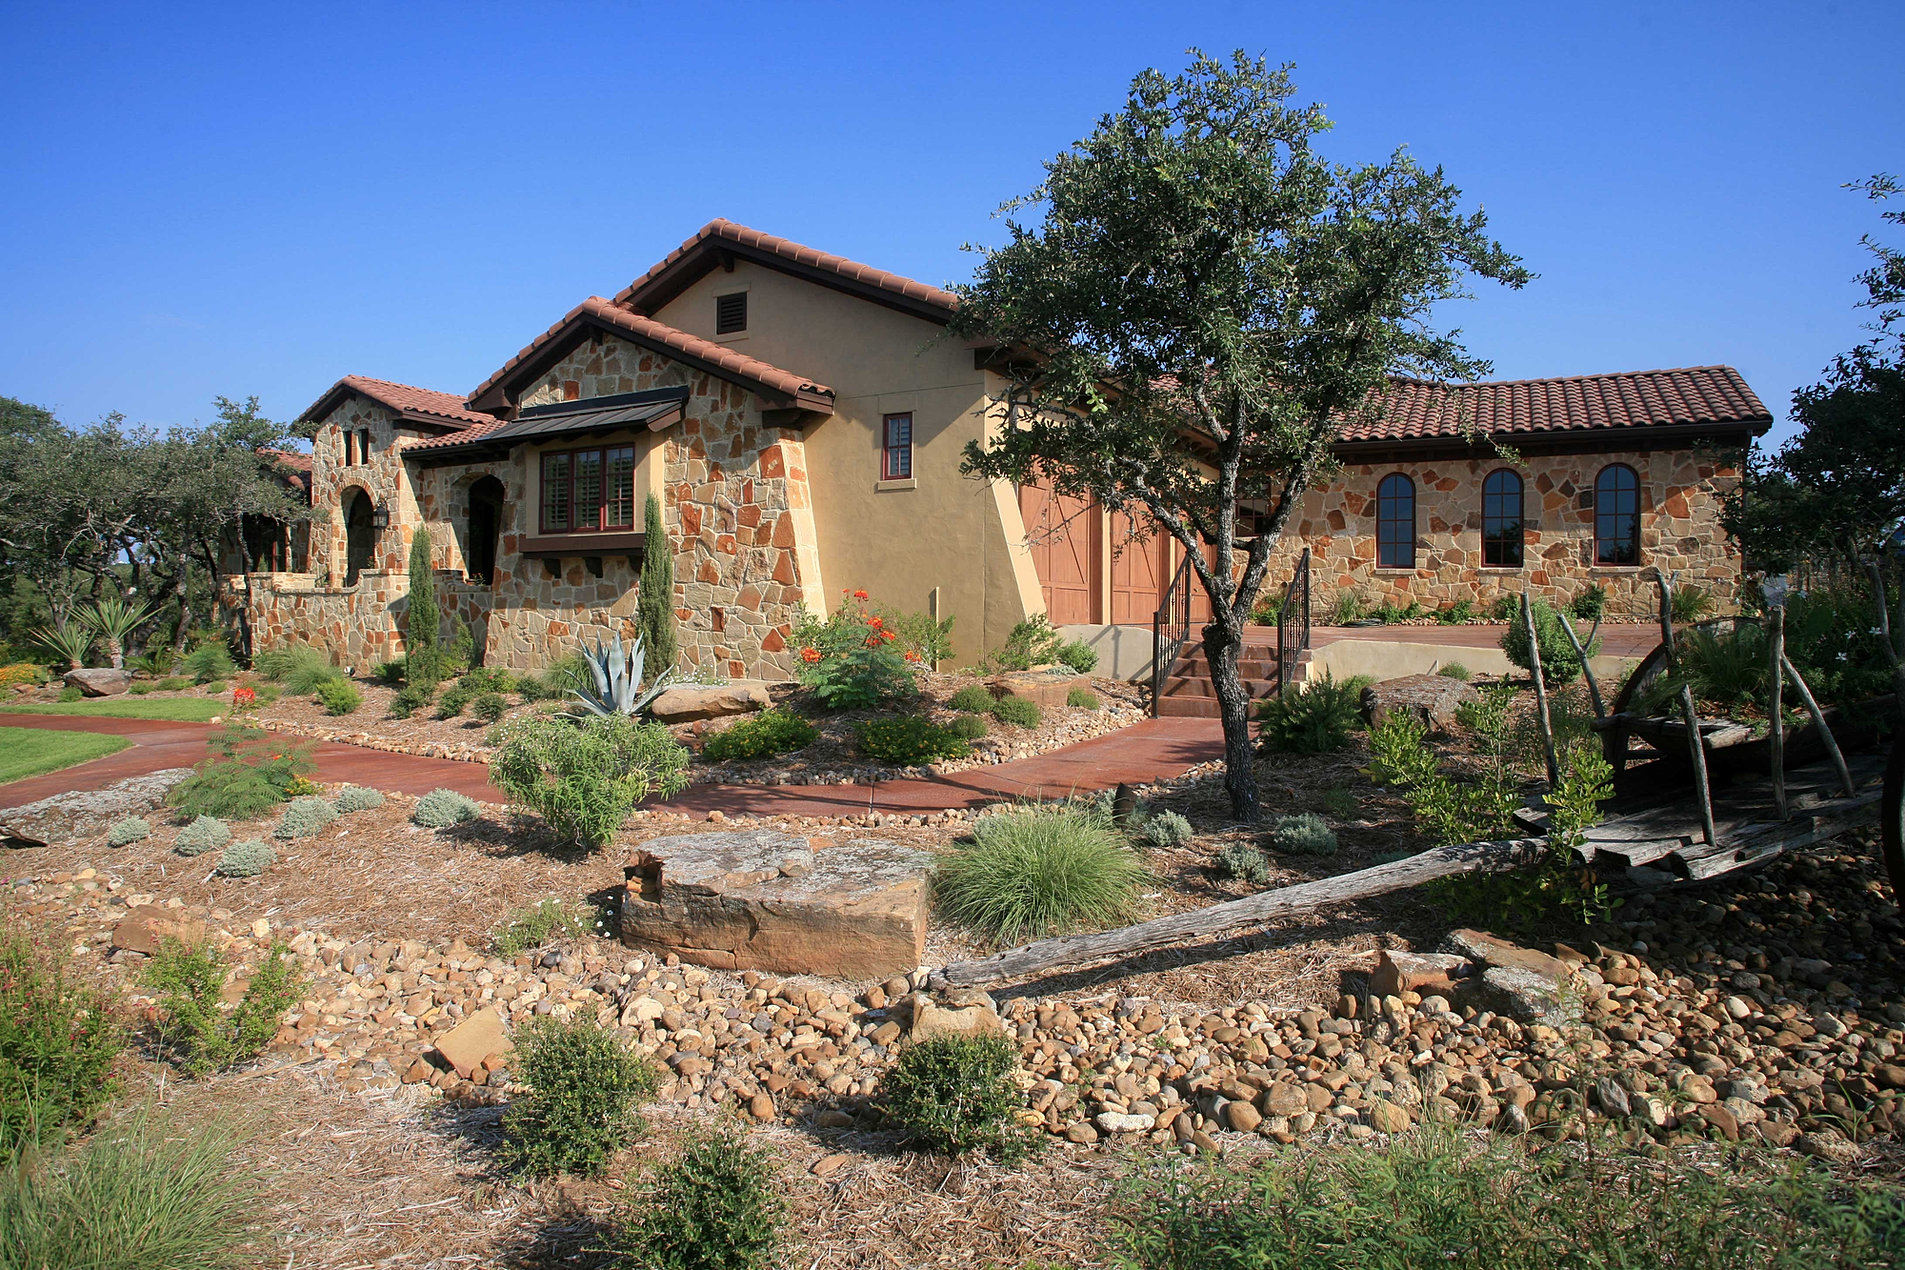 S A Grows Landscape Services Landscaping Company San